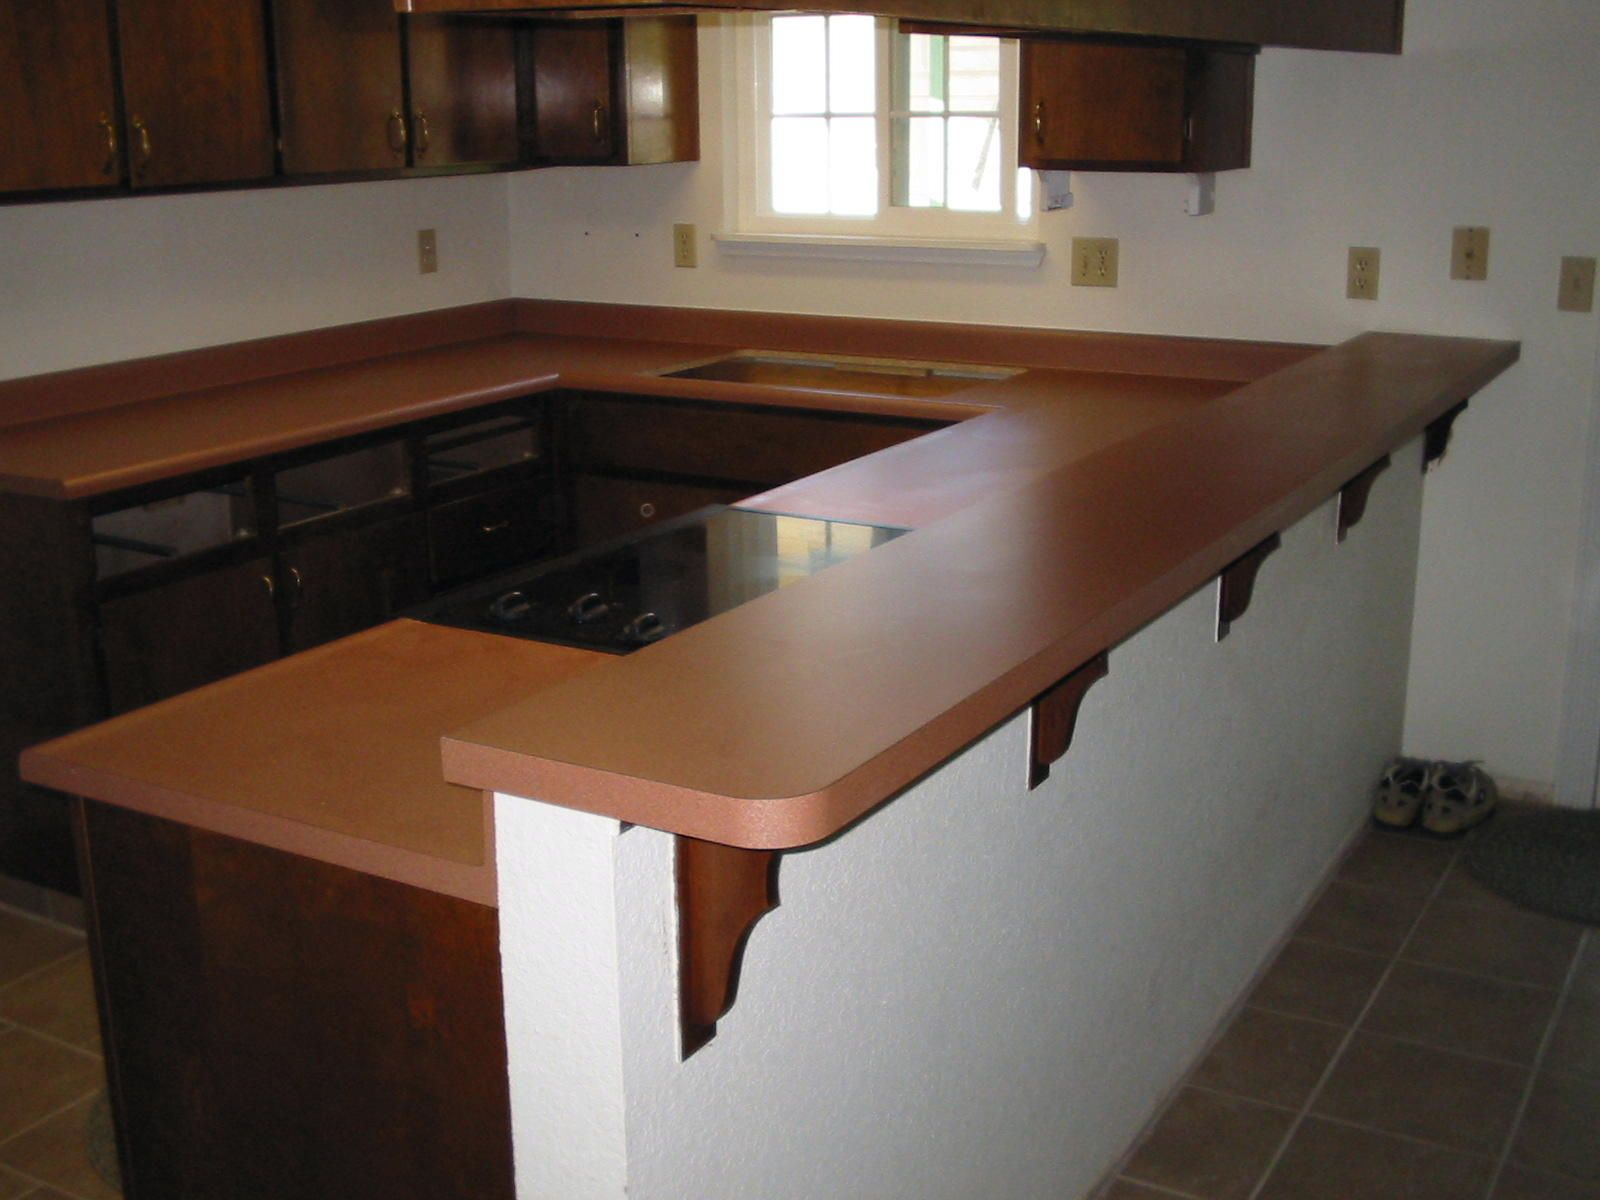 How To Build A Laminate Countertop Wilsonart Laminate Countertops Kitchen Countertops